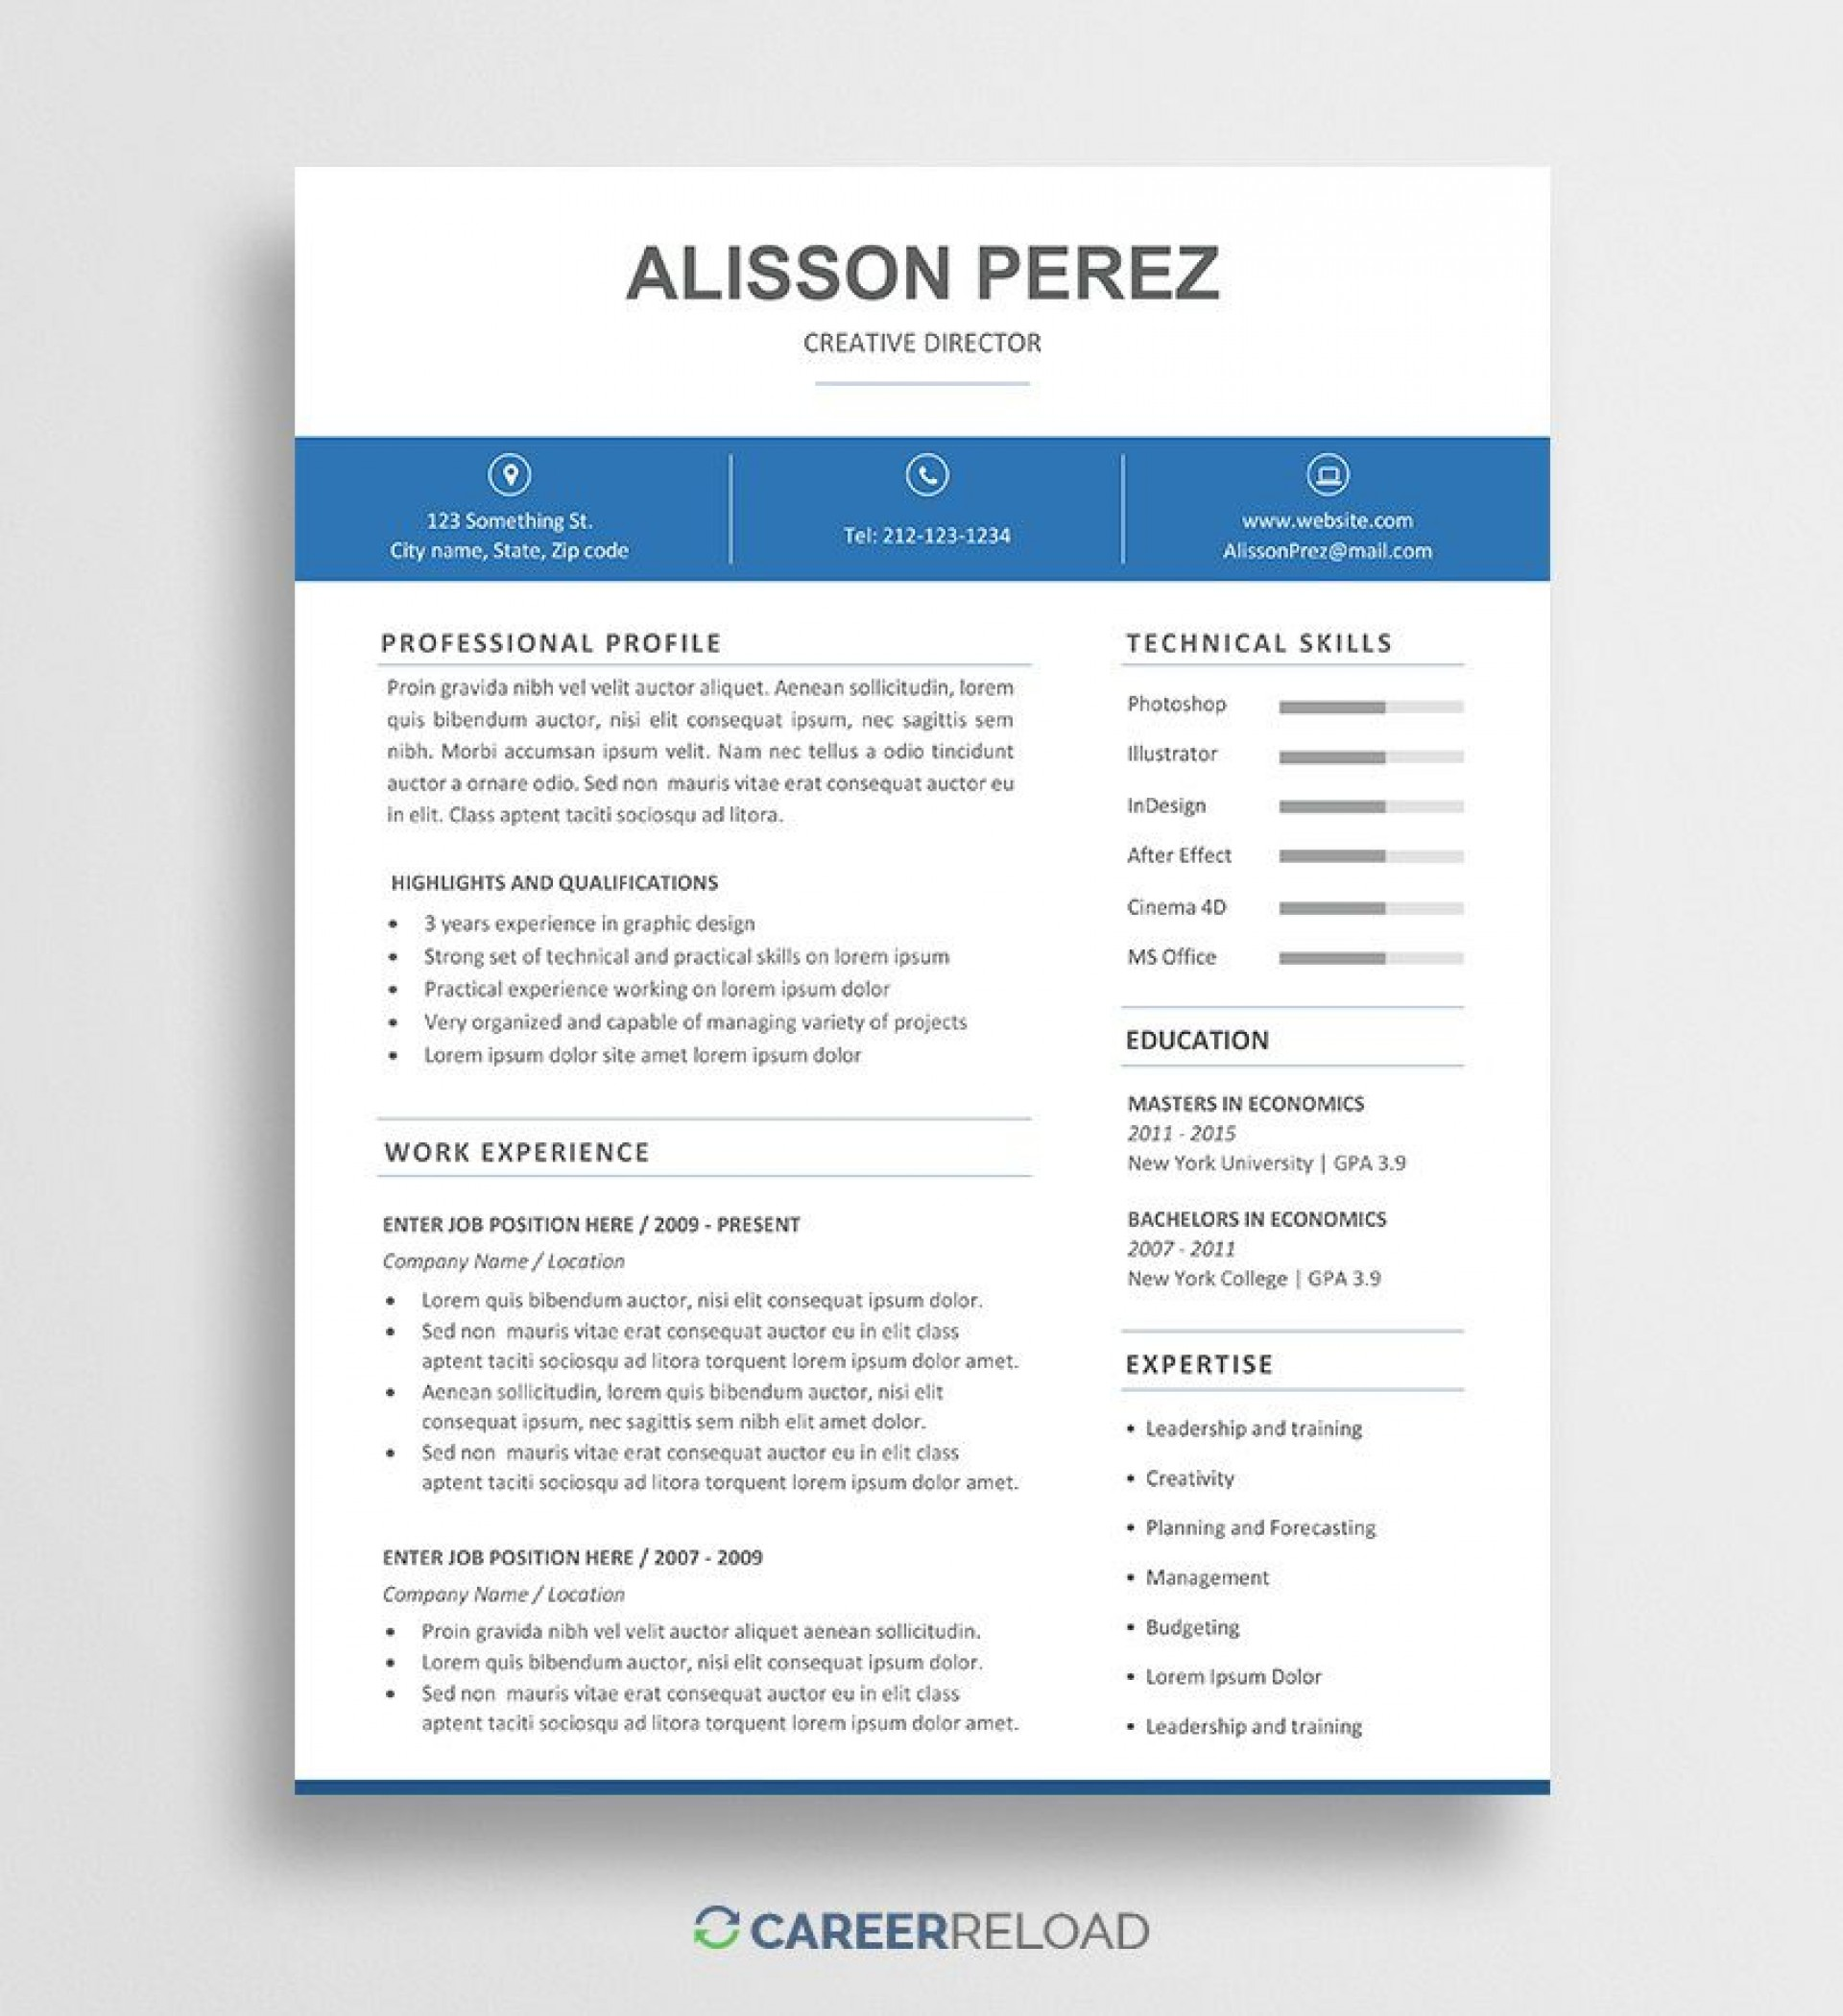 009 Dreaded Resume Template For Word Free Inspiration  Creative Curriculum Vitae Download Microsoft 20191920